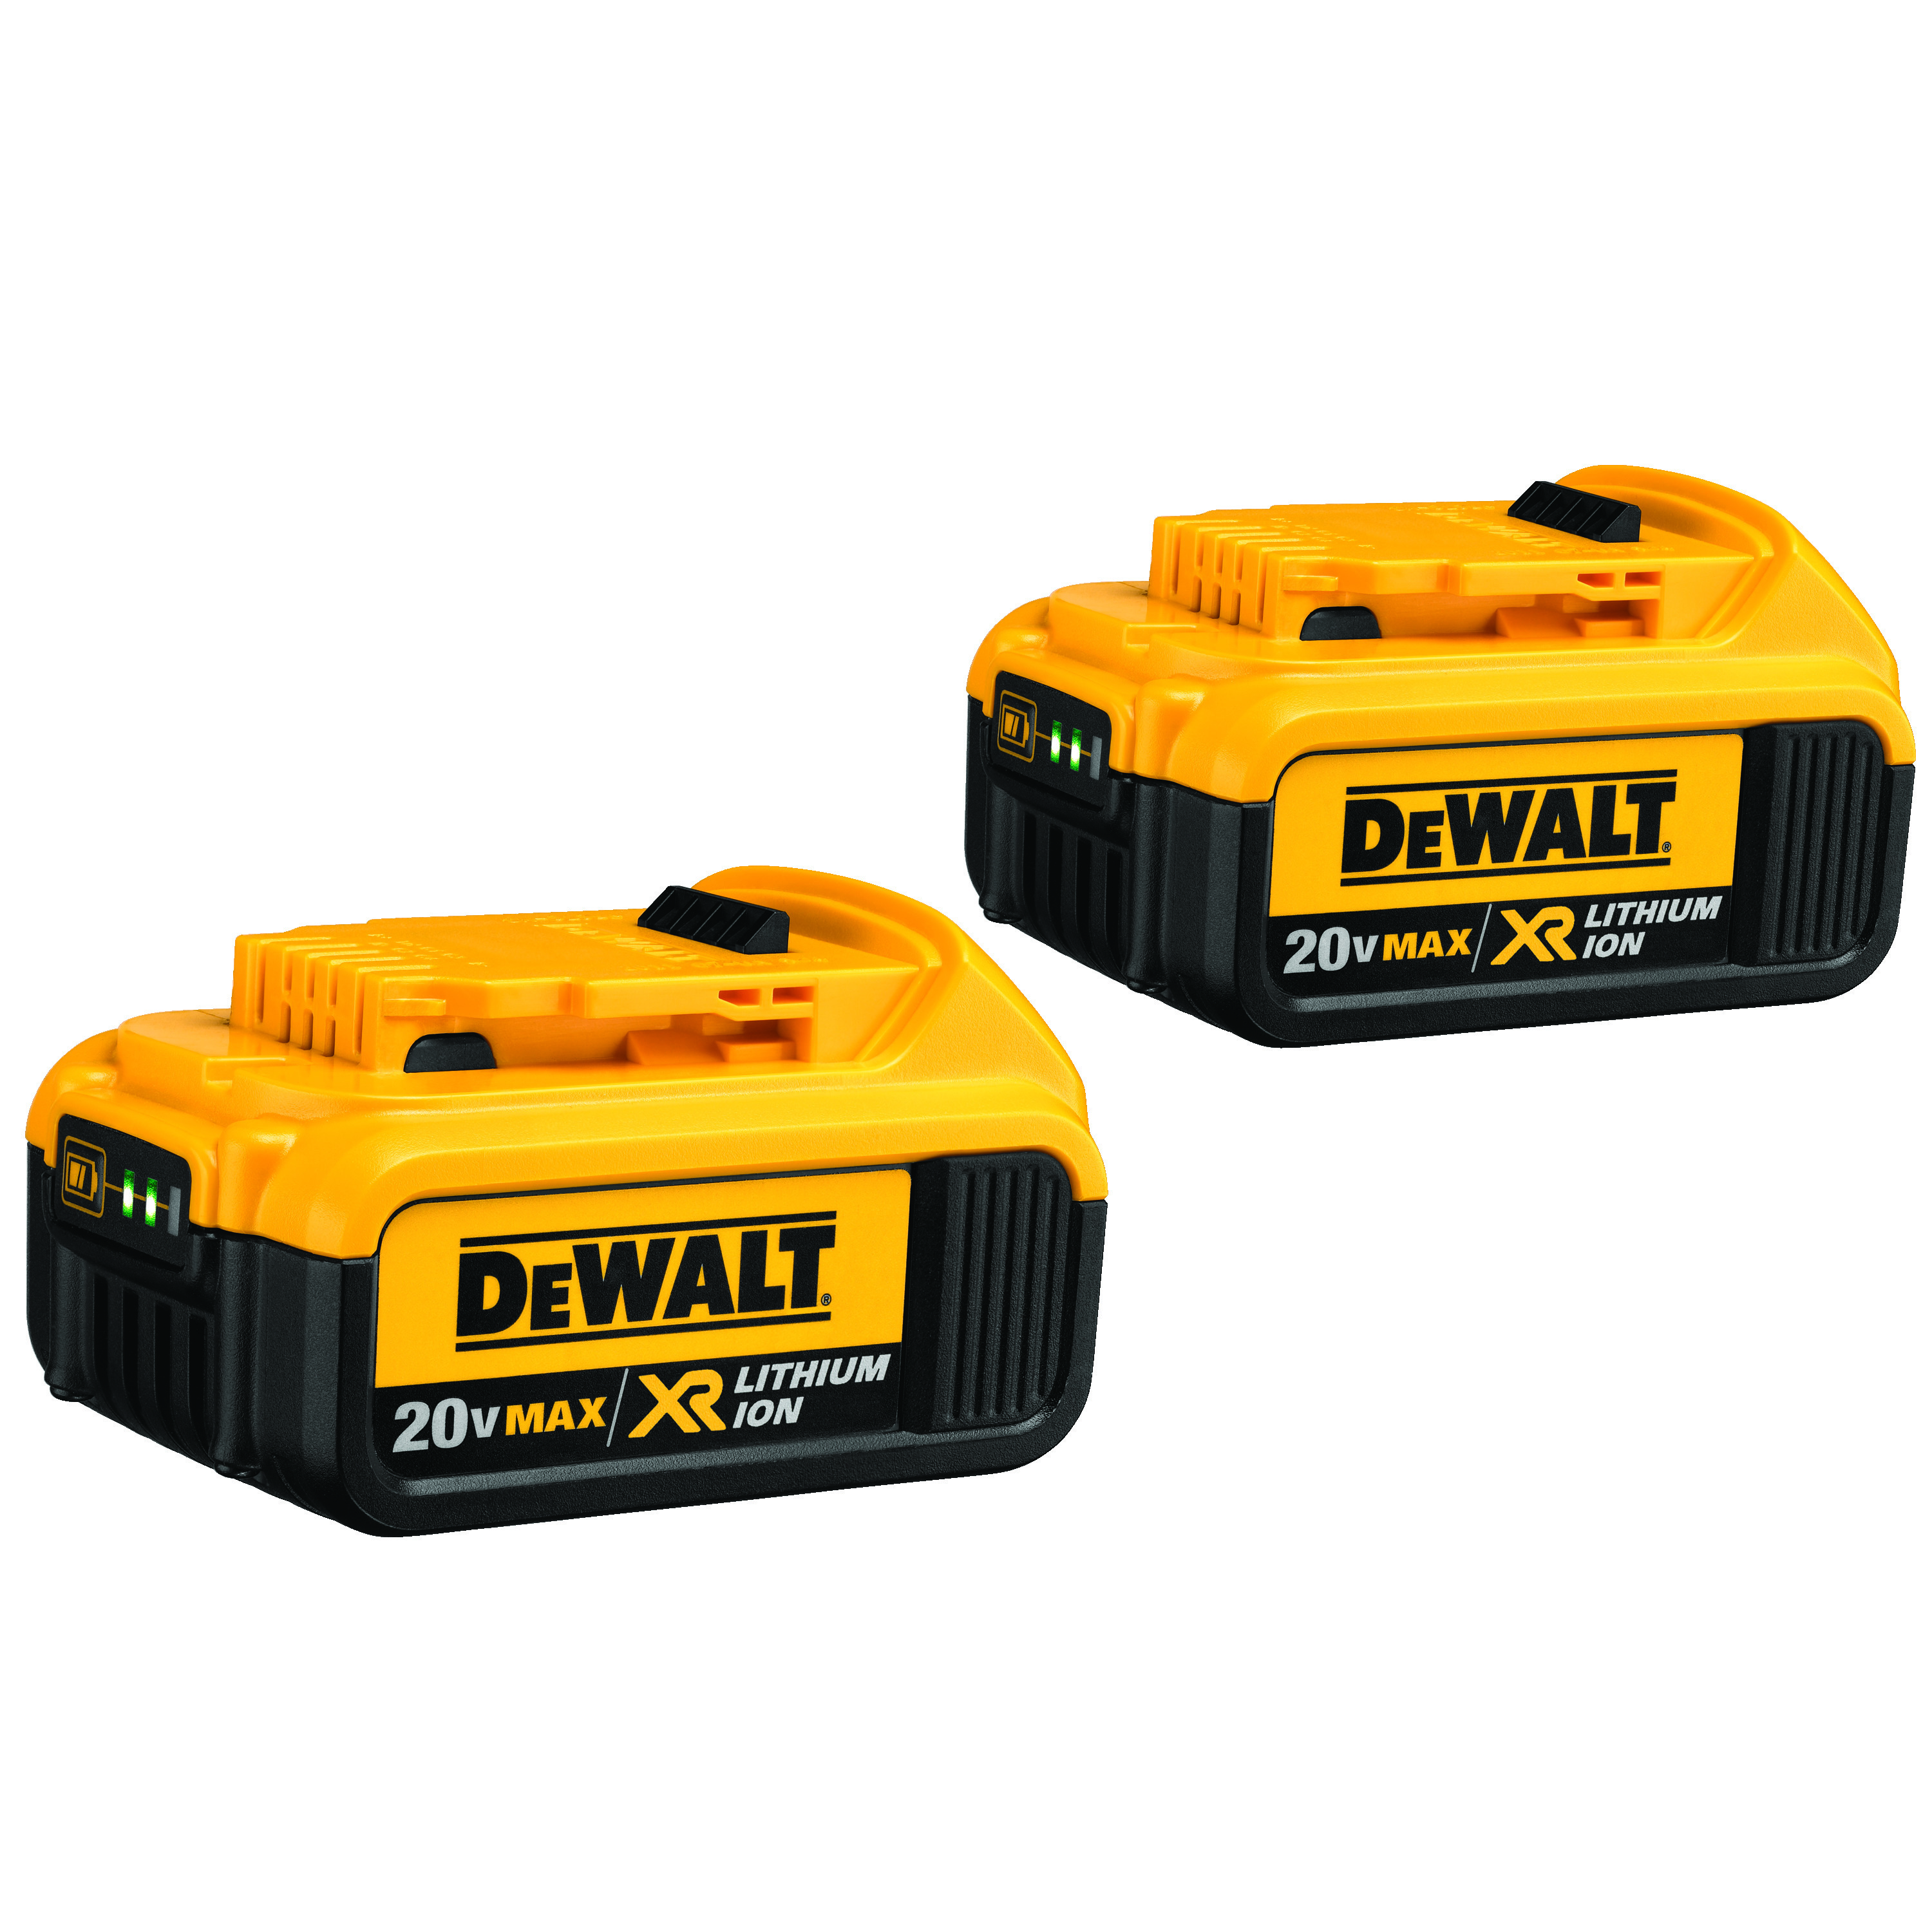 DeWALT® 20V MAX* MATRIX™ XR™ DCB204-2 2-Piece High Capacity Premium Slide, 4 Ah Lithium-Ion Battery, 20 VDC Charge, For Use With DeWALT® 20 V MAX Li-Ion Chargers and Power TMAX